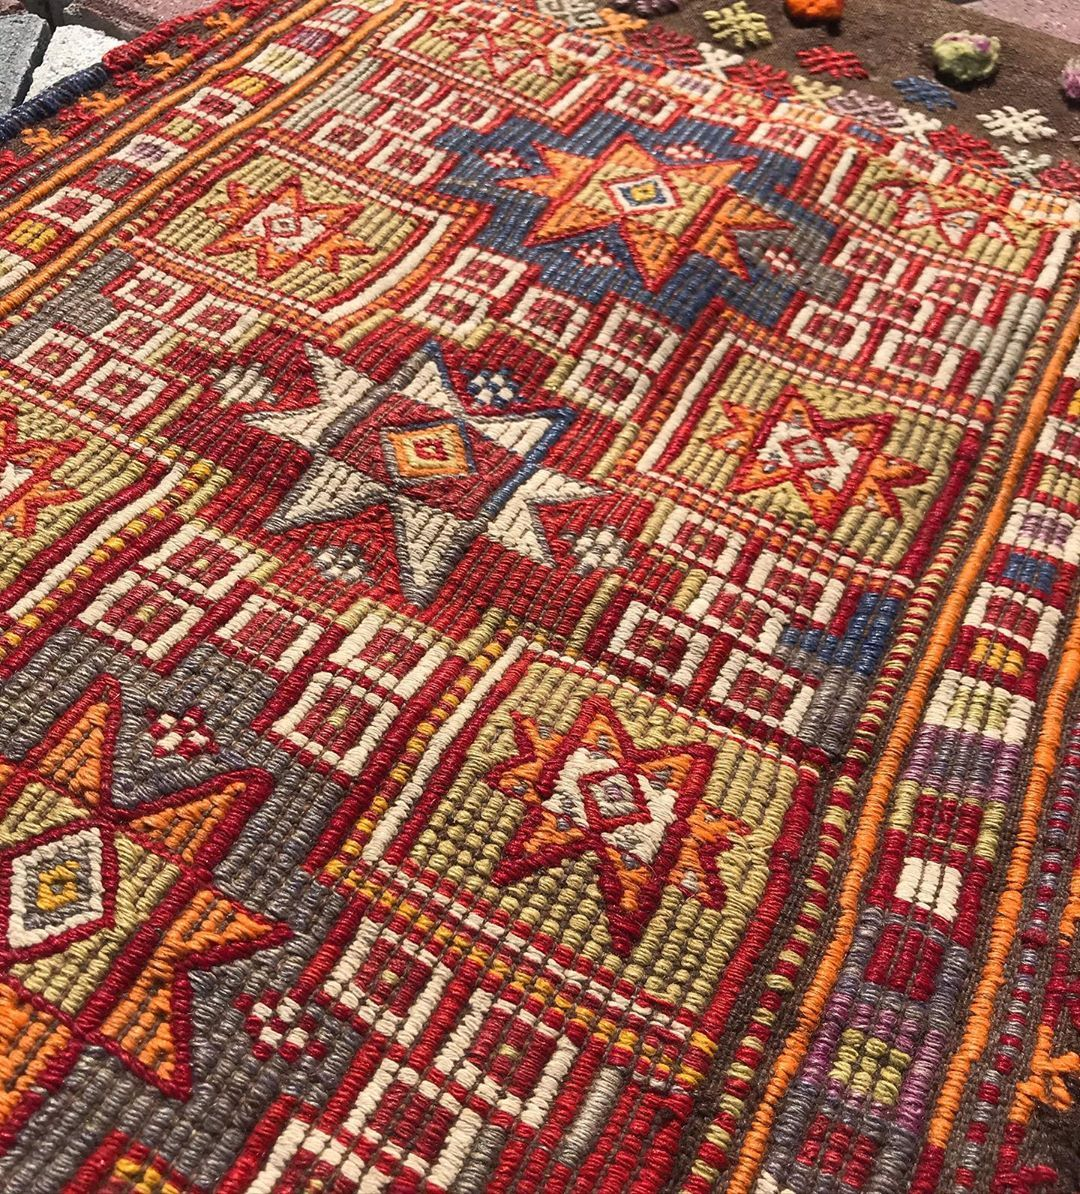 Rug Store Indian Style Rugs Designer In 2020 Rug Store Rugs Unique Items Products